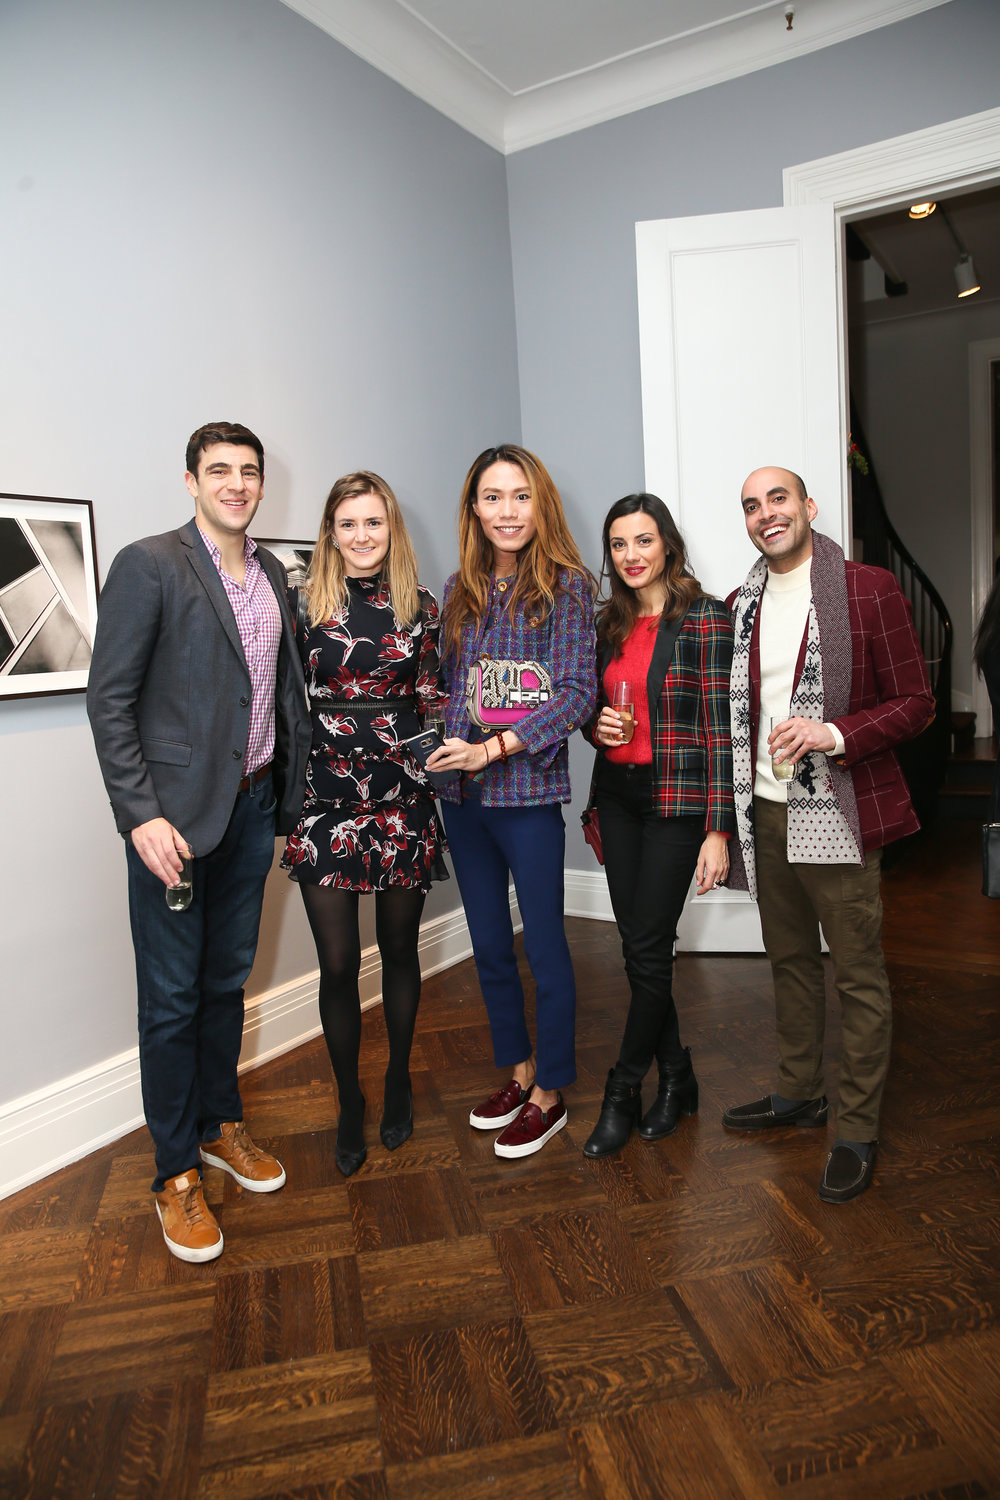 From left: Hal Coopersmith, Flora Irving, Andrew Cheng, Verdiana Patacchini, Matt Vahidi. Photo credit: Noa Griffel for BFA